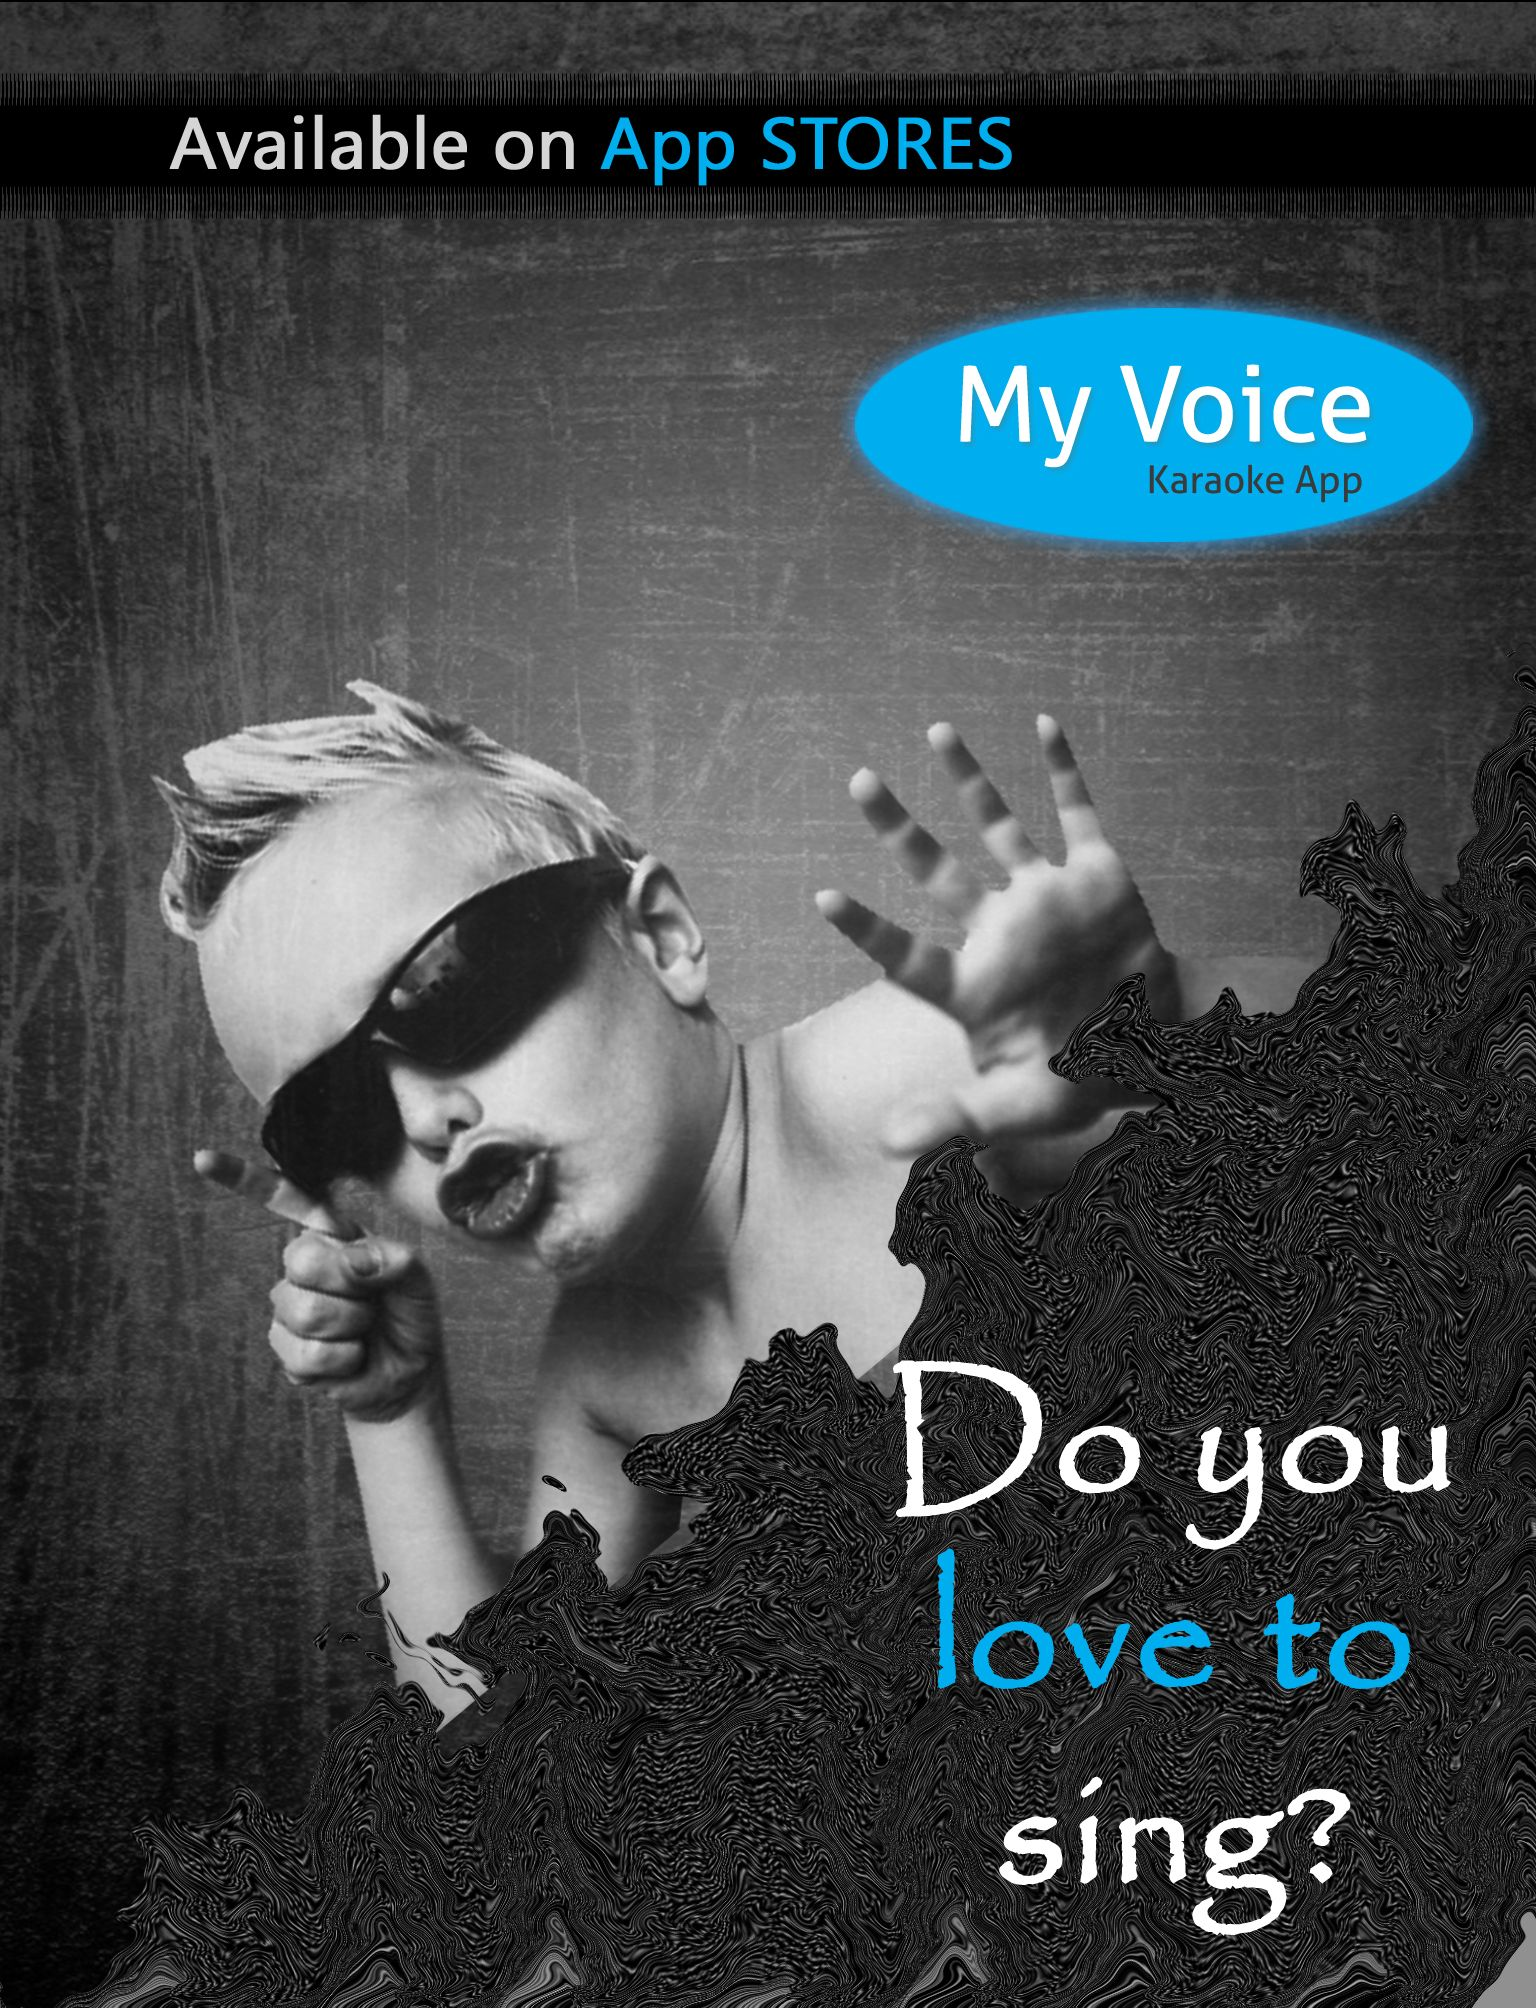 MY VOICE the best Karaoke App is available on App Store